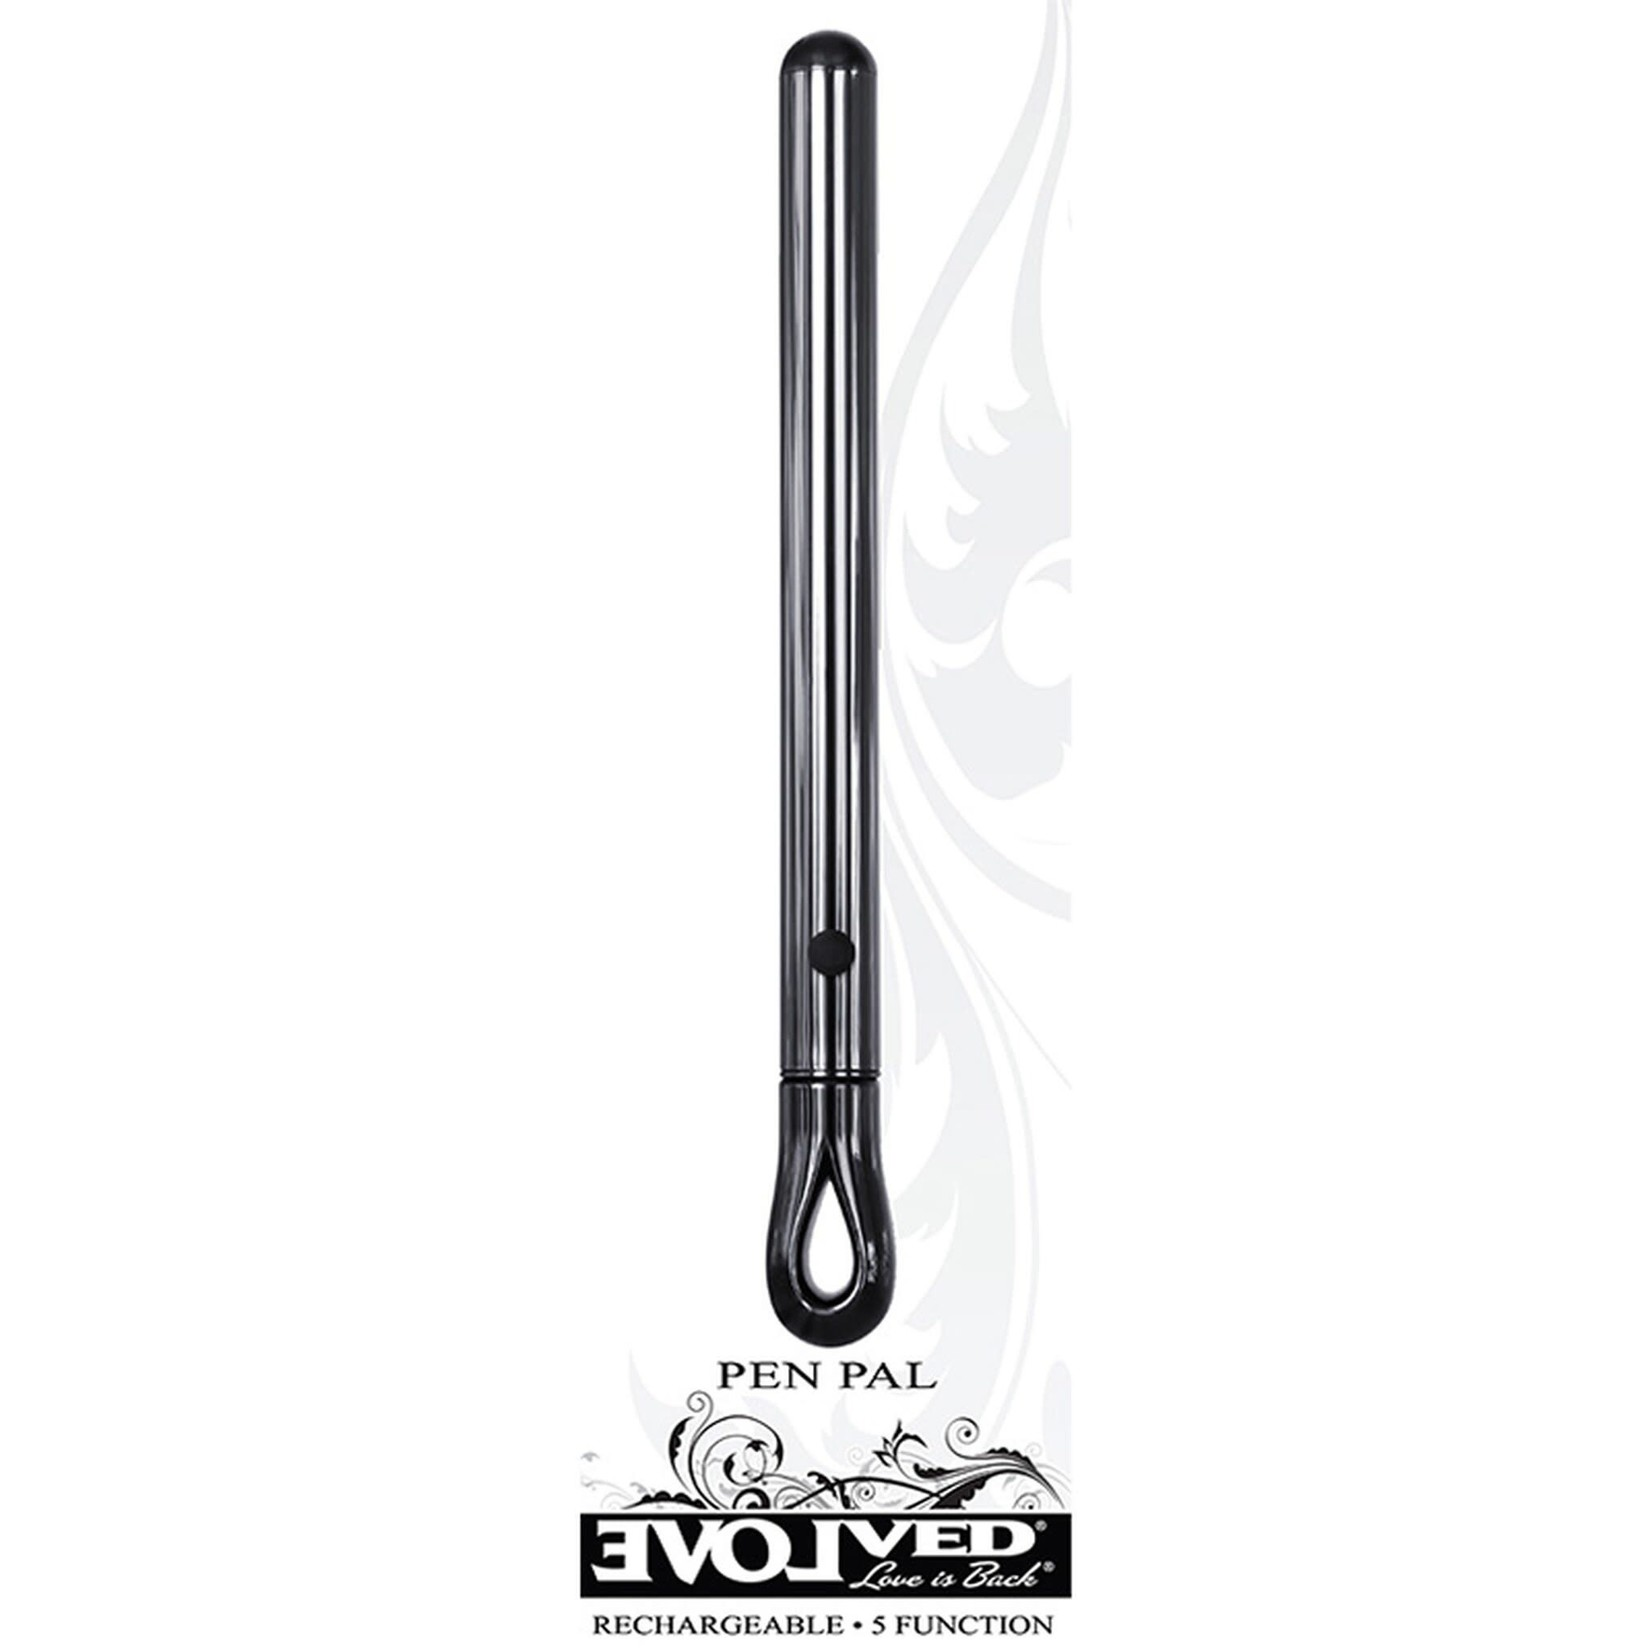 Pen Pal Rechargeable Compact Stainless Steel Vibrator - Black Chrome